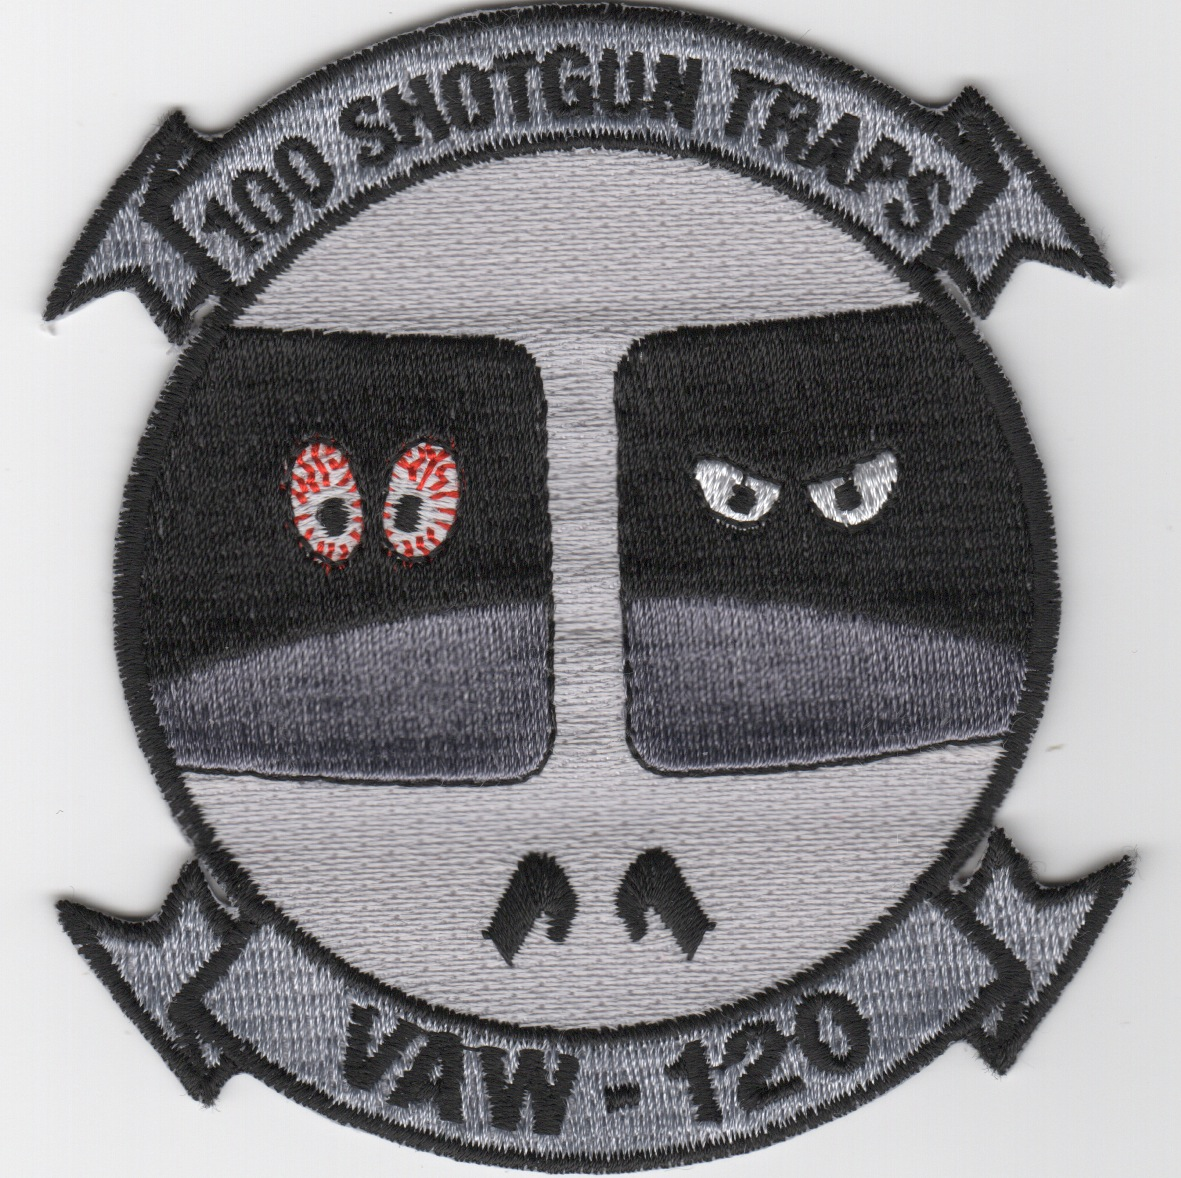 VAW-120 '100 Shotgun Traps' (Black)